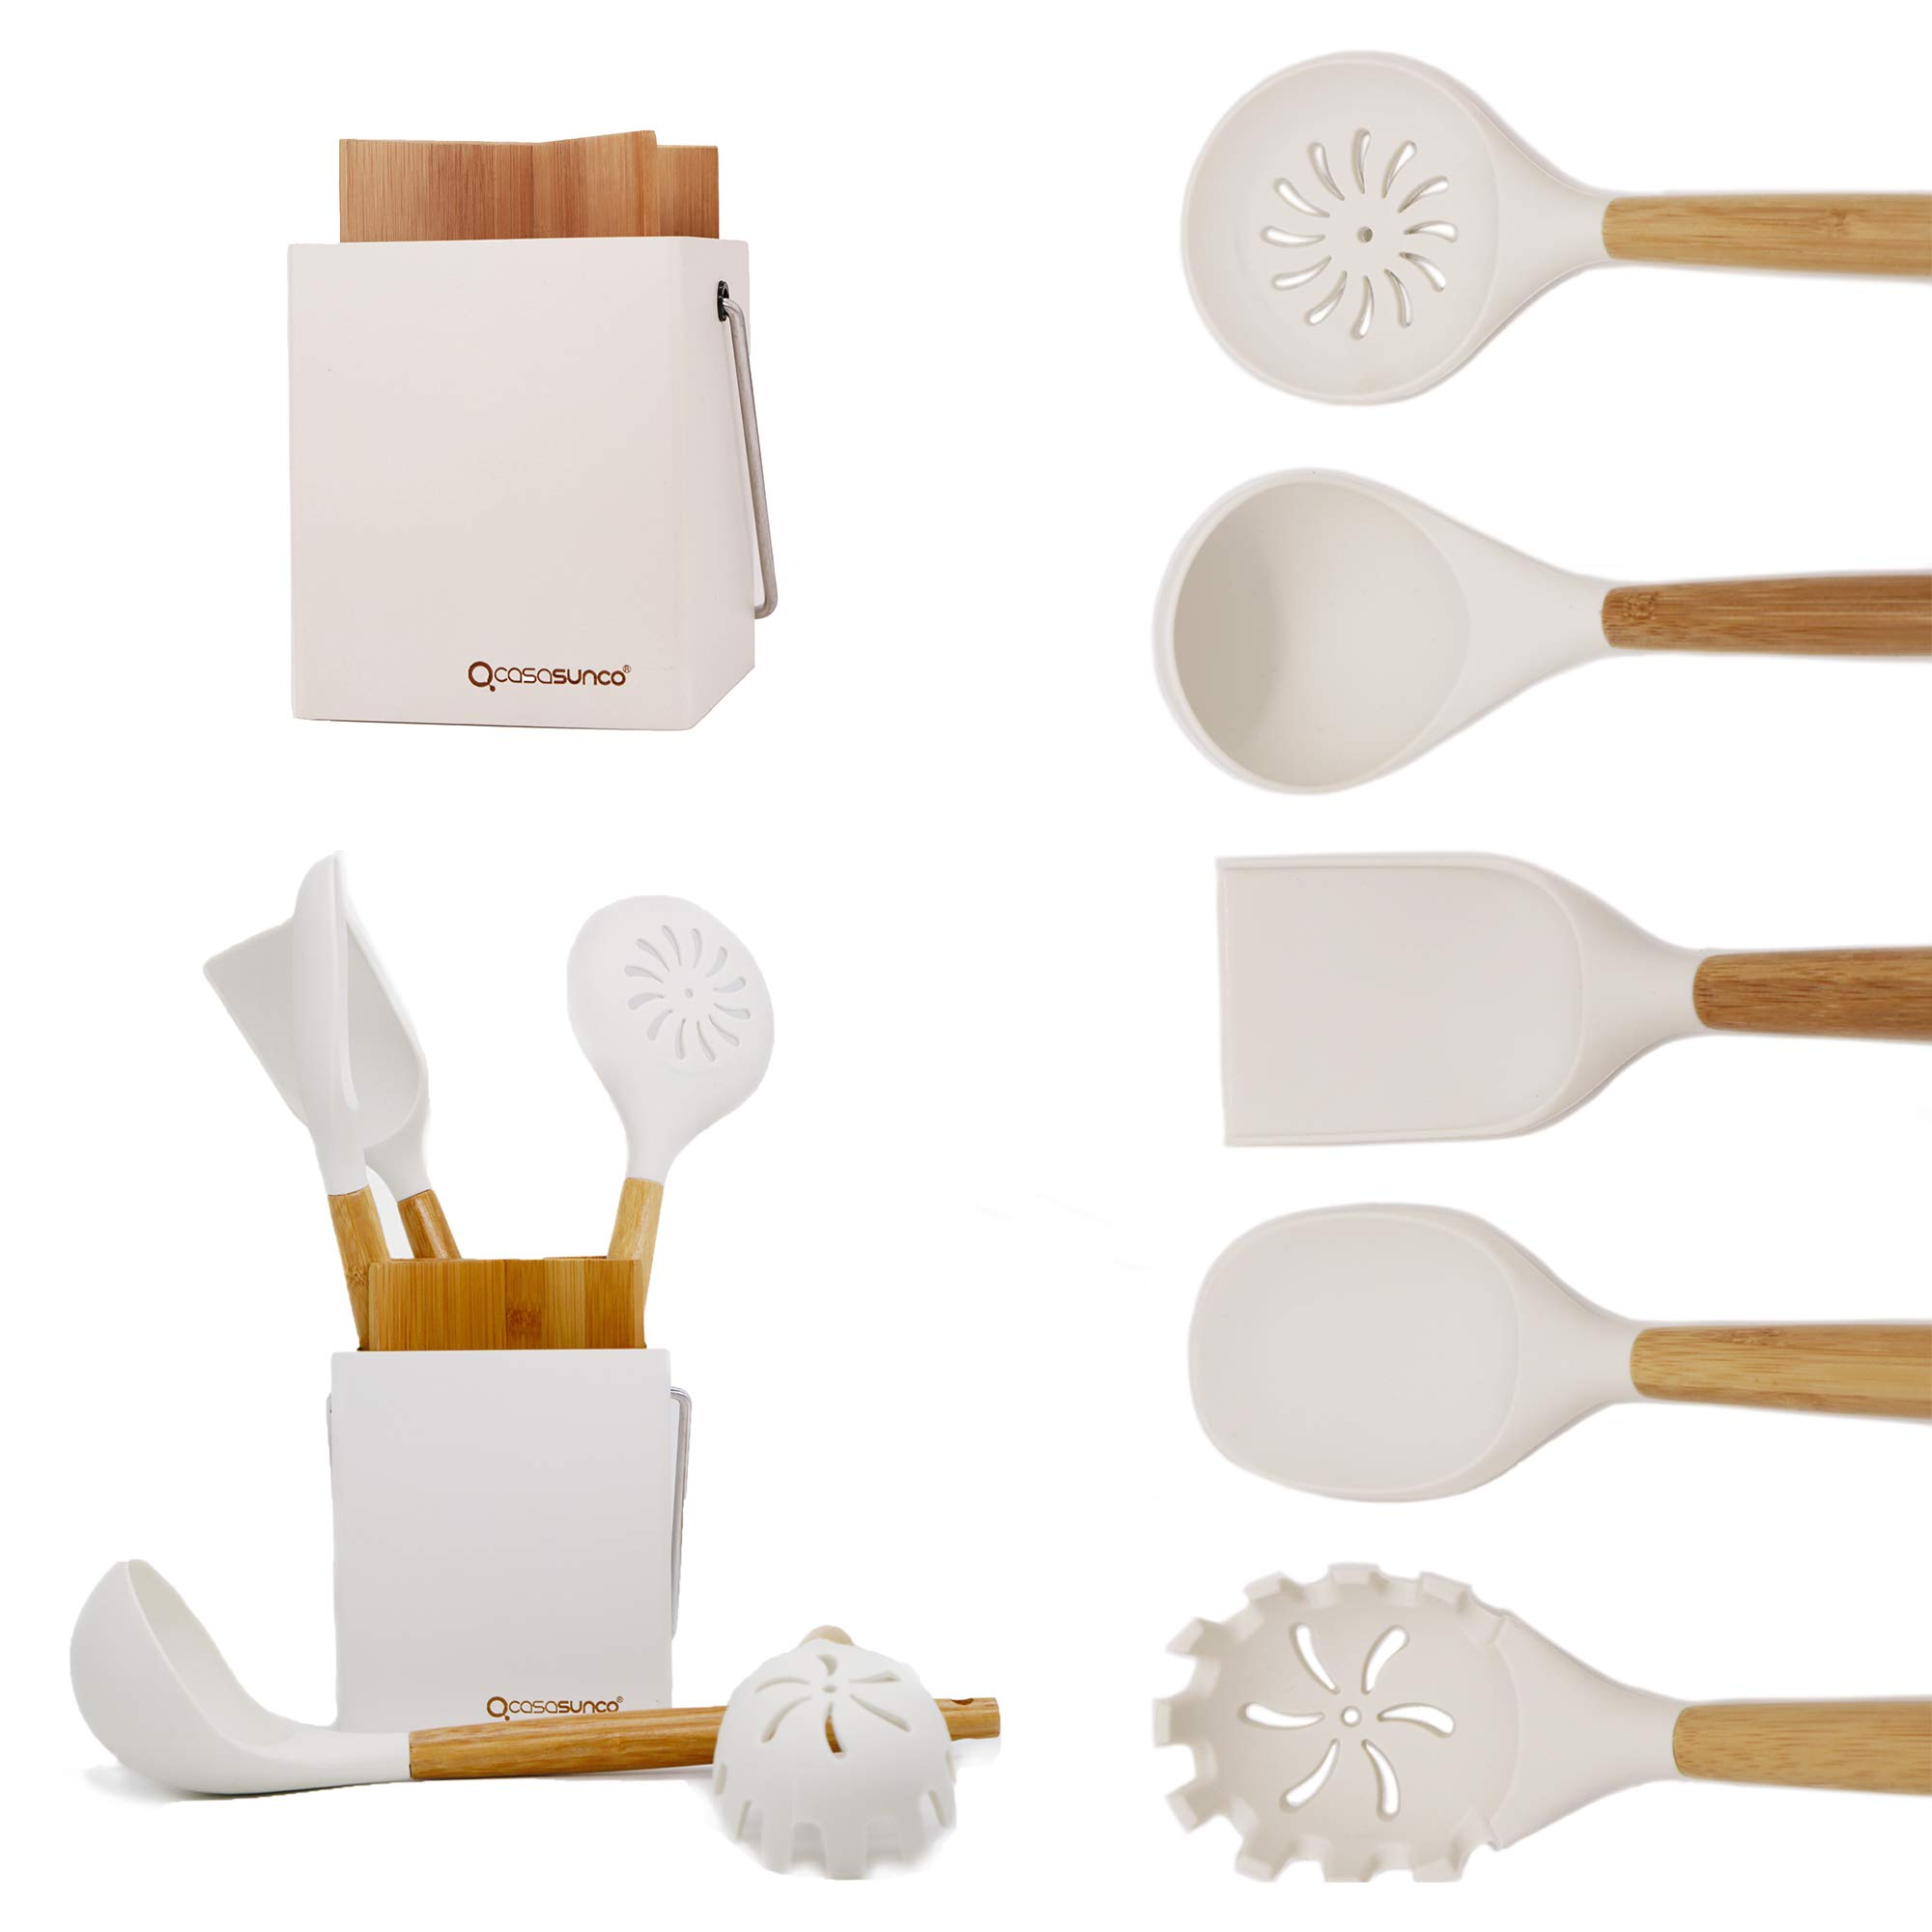 CASASUNCO Cooking Utensil Set of 5 with Holder– Beech Wood & Silicone – Practical Professional Heat-Resistant Non-stick Durable - Skimmer, Spoon, Ladle… (Creamy White)